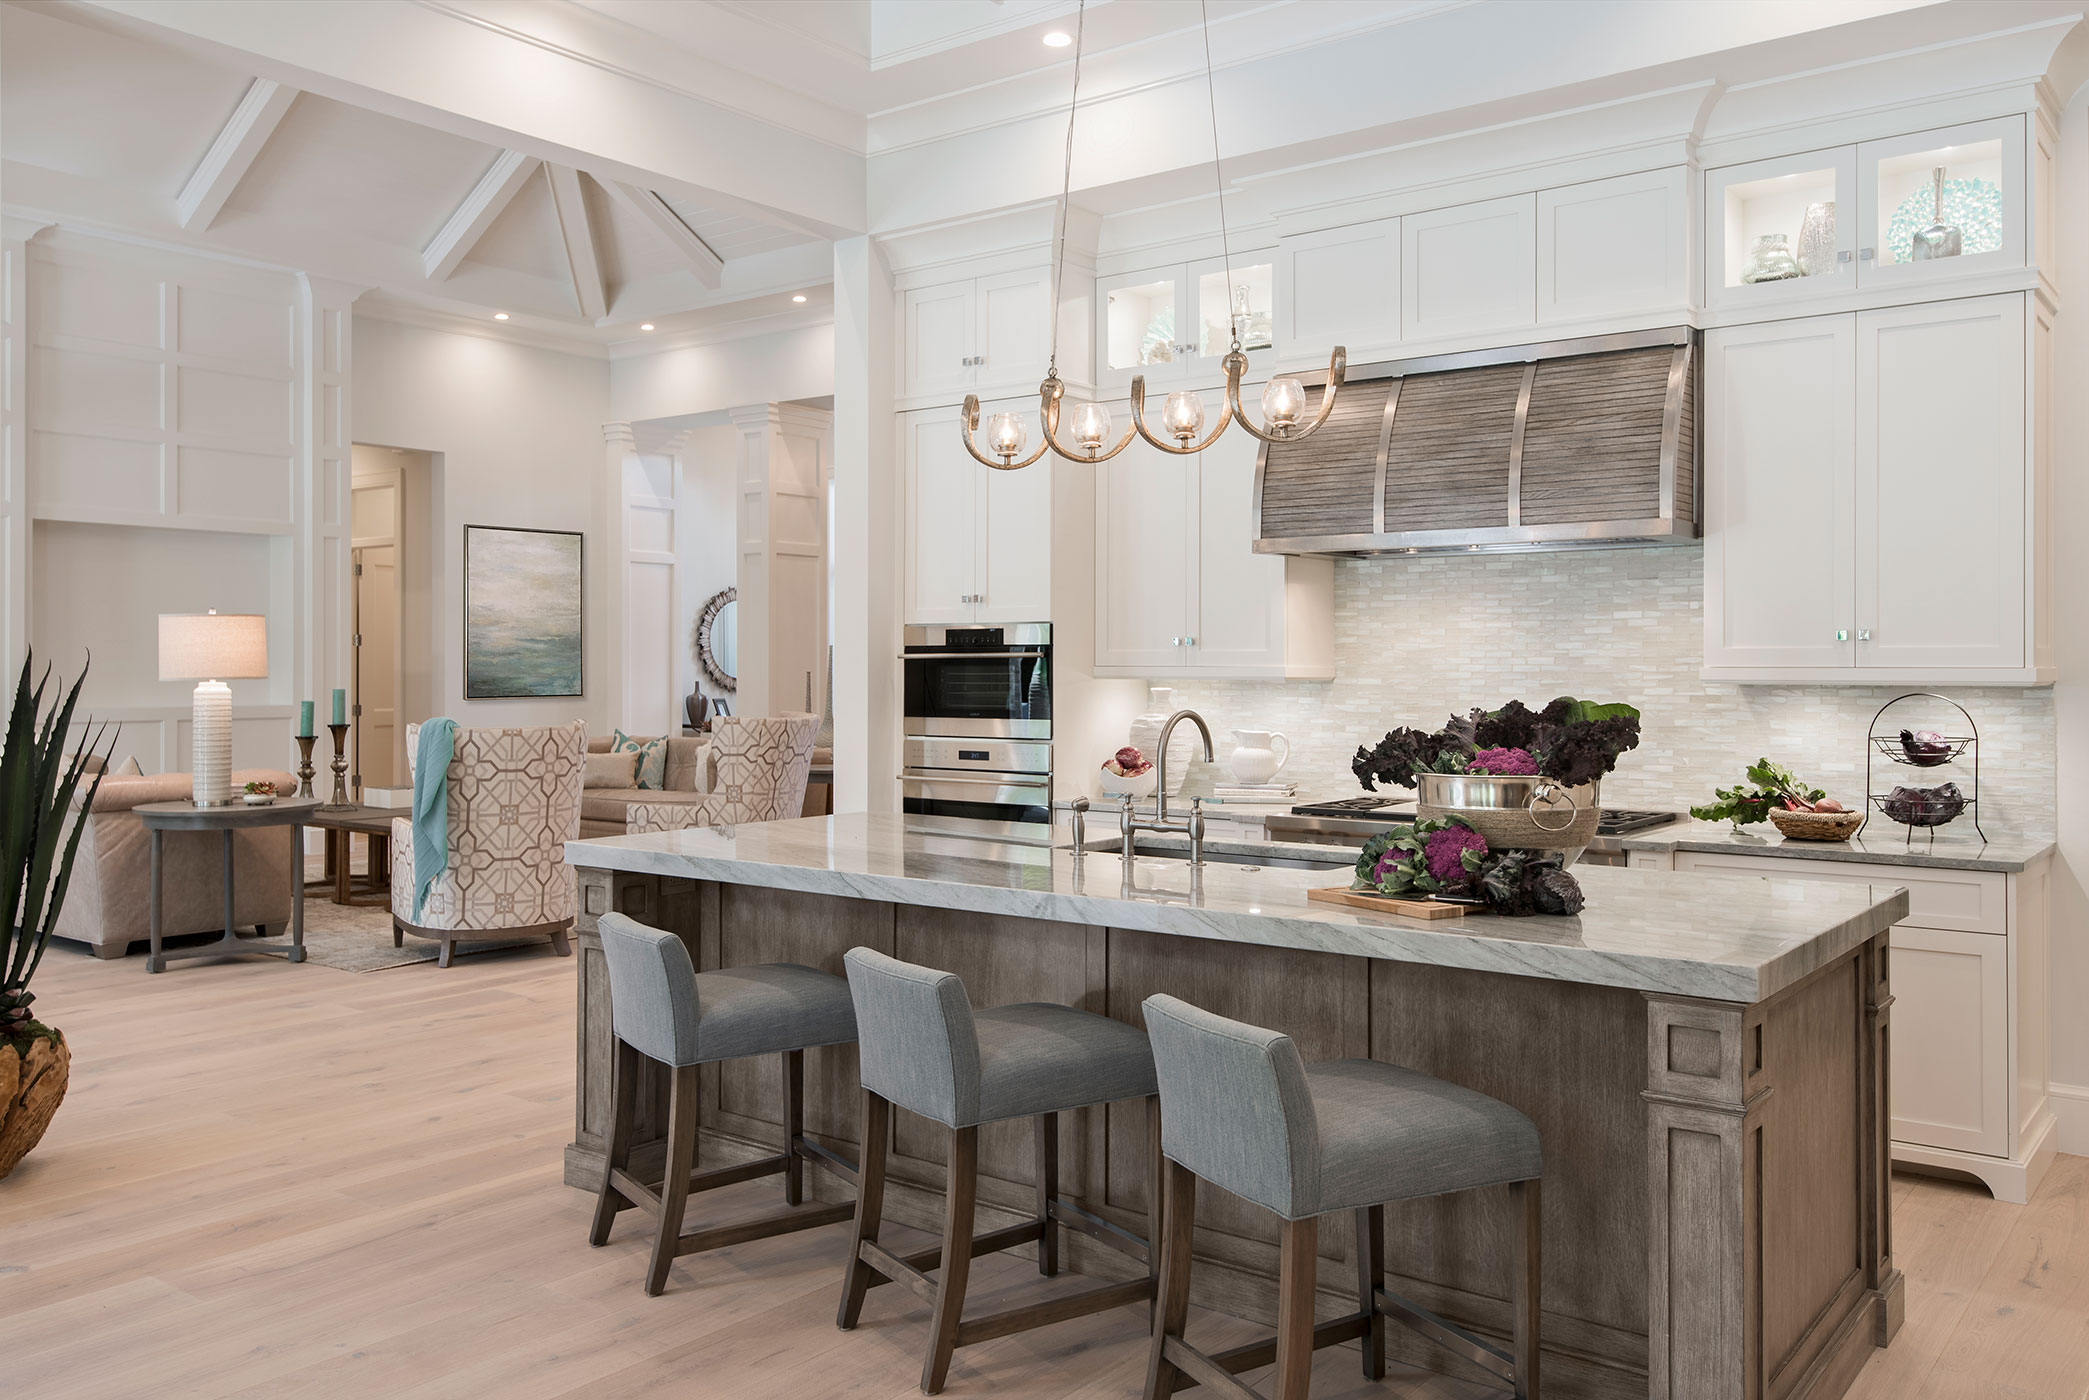 Kitchen Design Naples Fl Kitchen And Bath Lakeland Florida Kitchen Design Tucson Az Kitchen